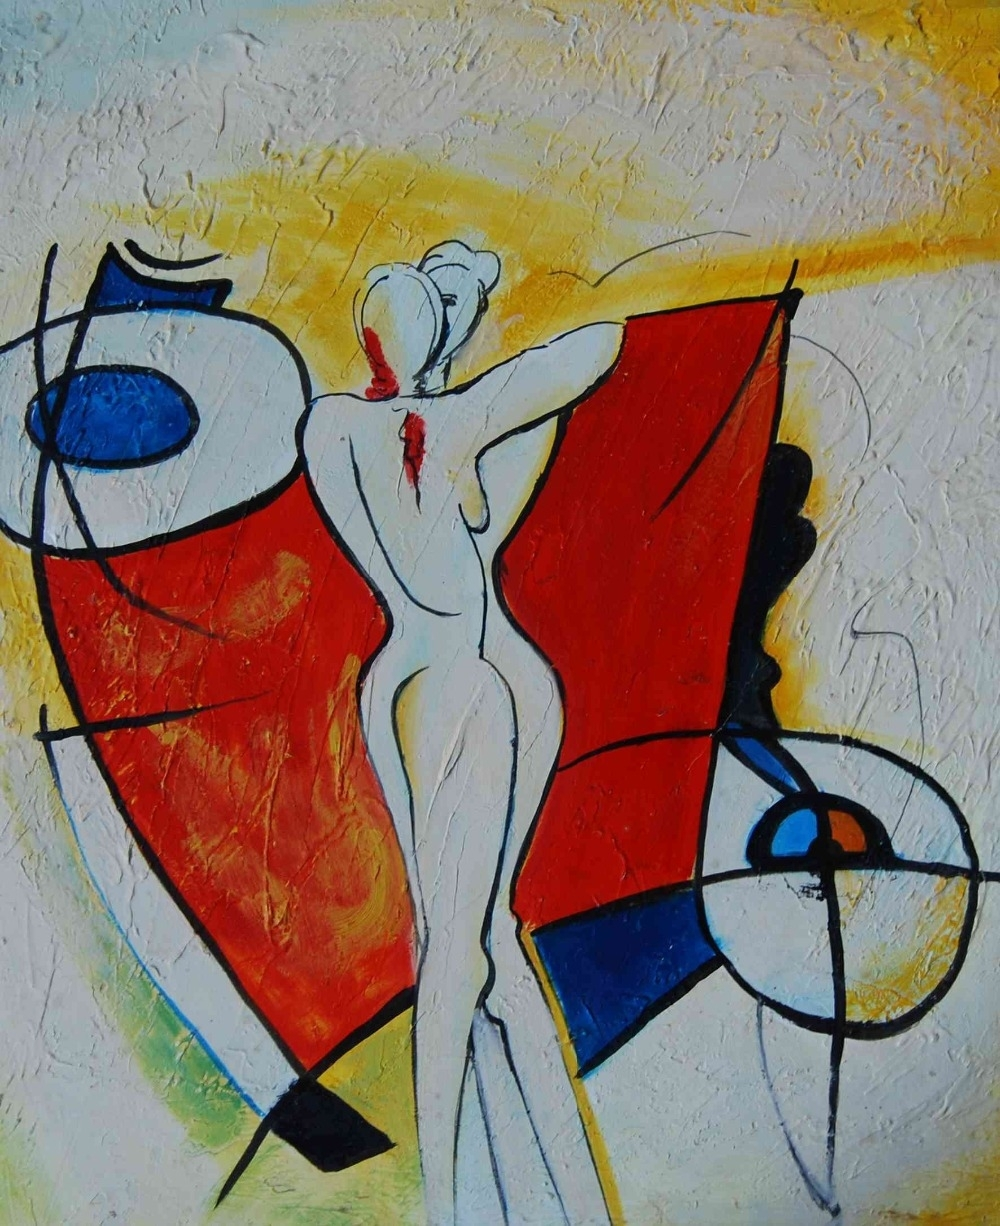 Abstract Two Girls Body Painting Print On Canvas Bedroom Throughout 2018 Abstract Body Wall Art (Gallery 4 of 20)